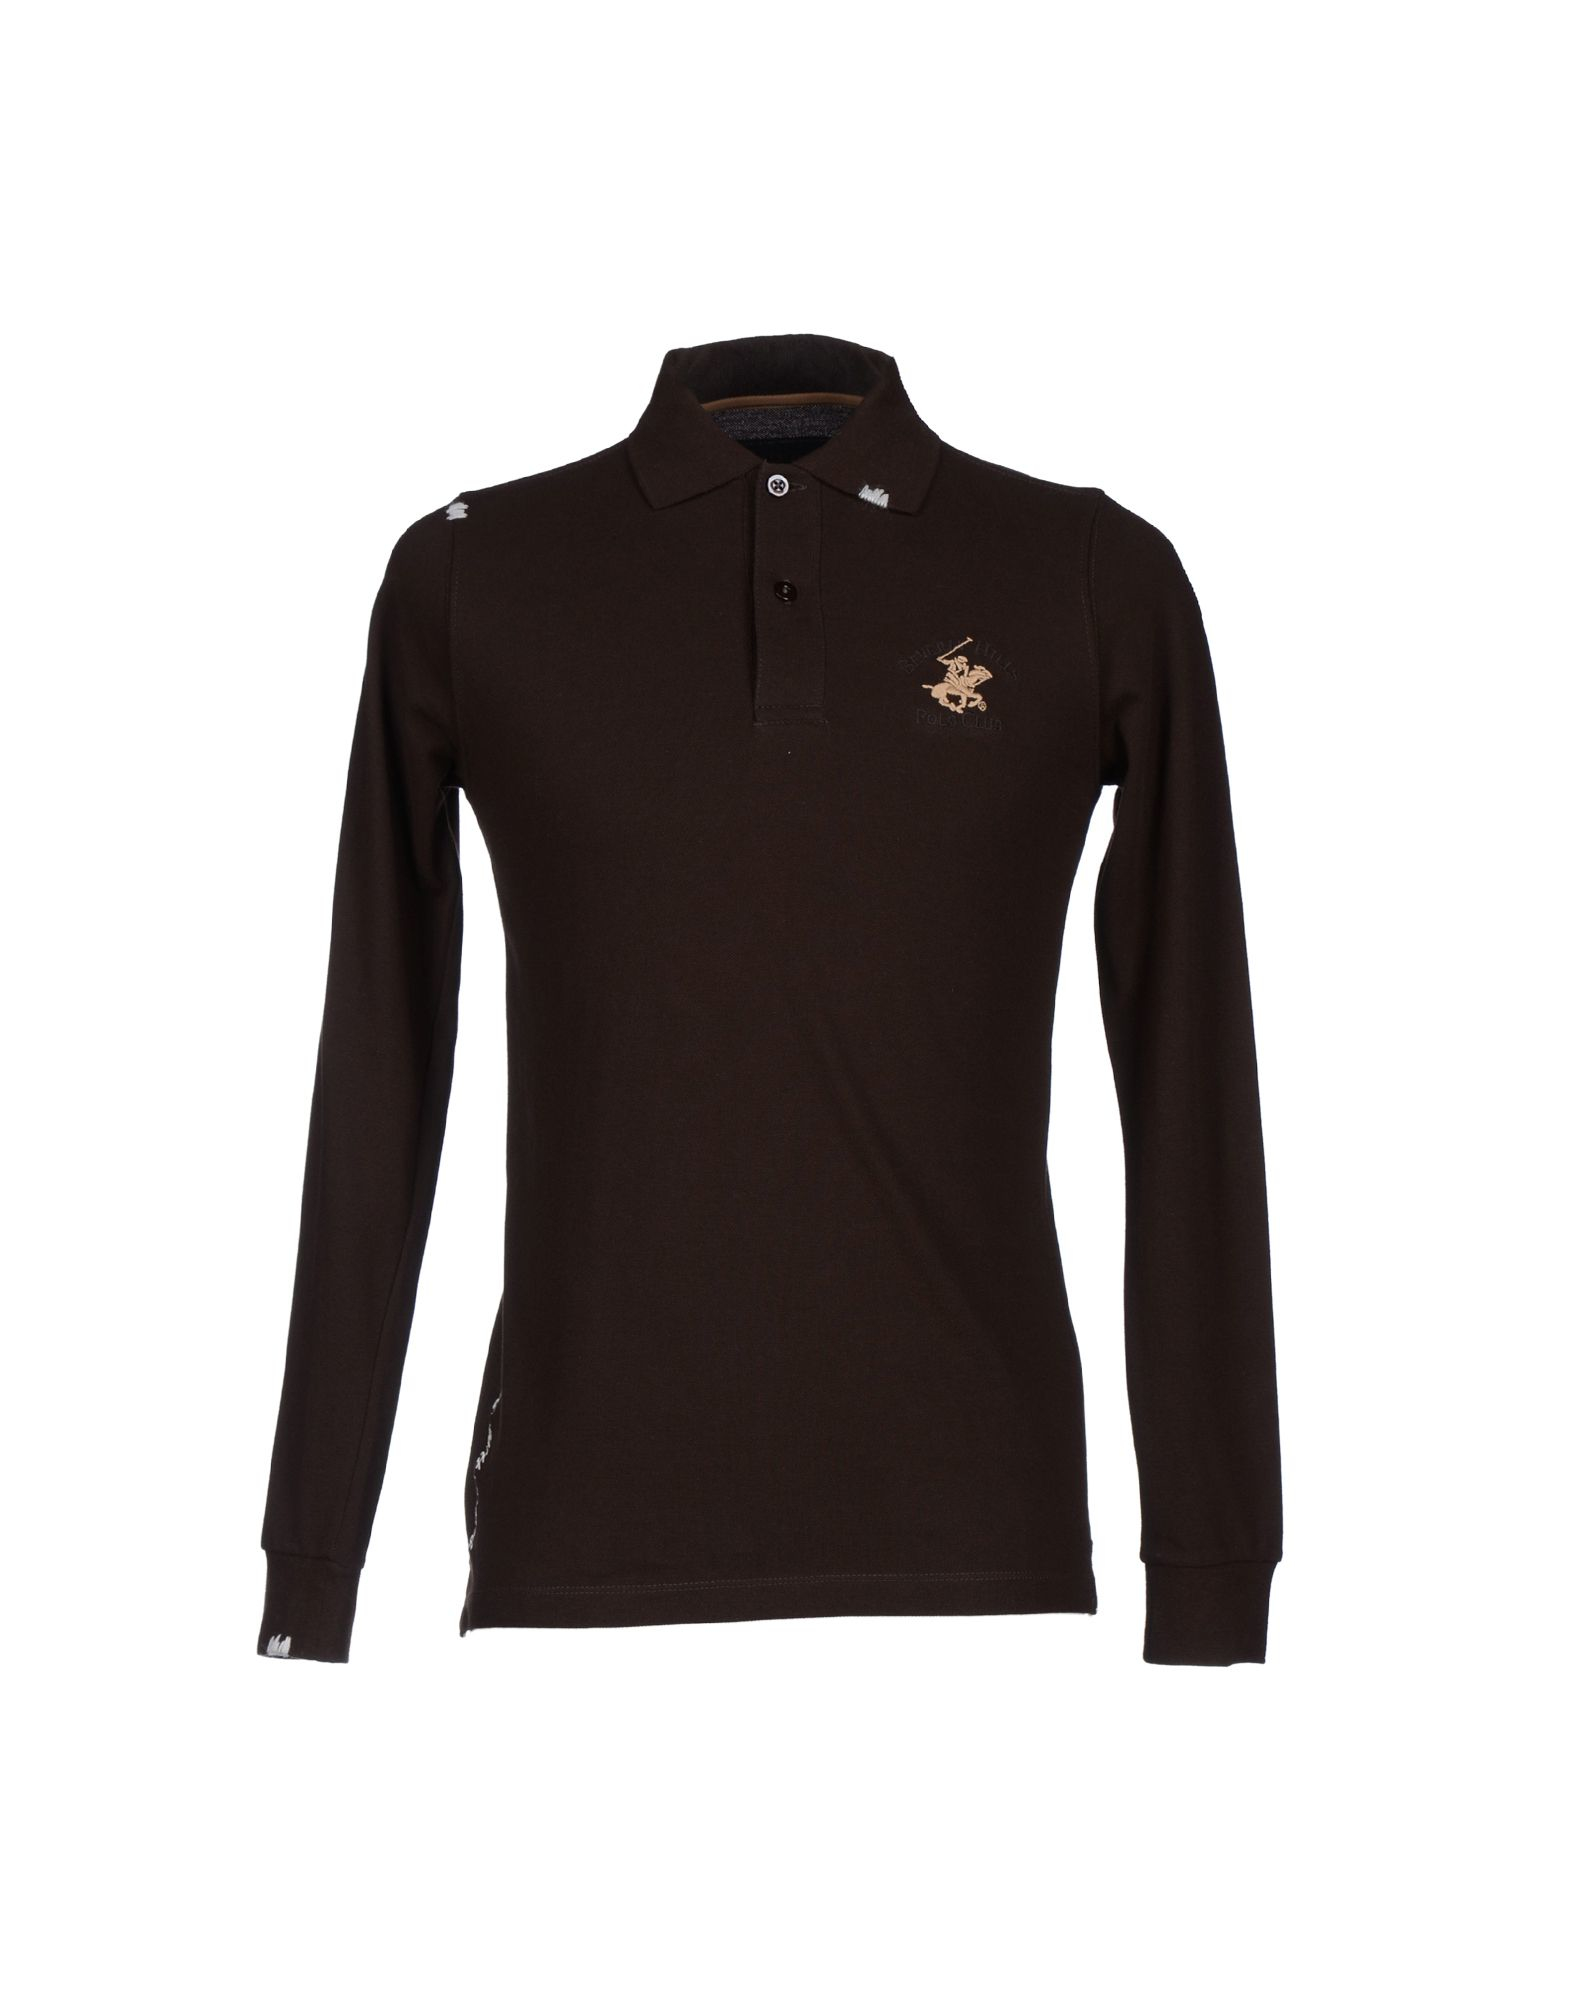 Lyst Beverly Hills Polo Club Polo Shirt In Brown For Men